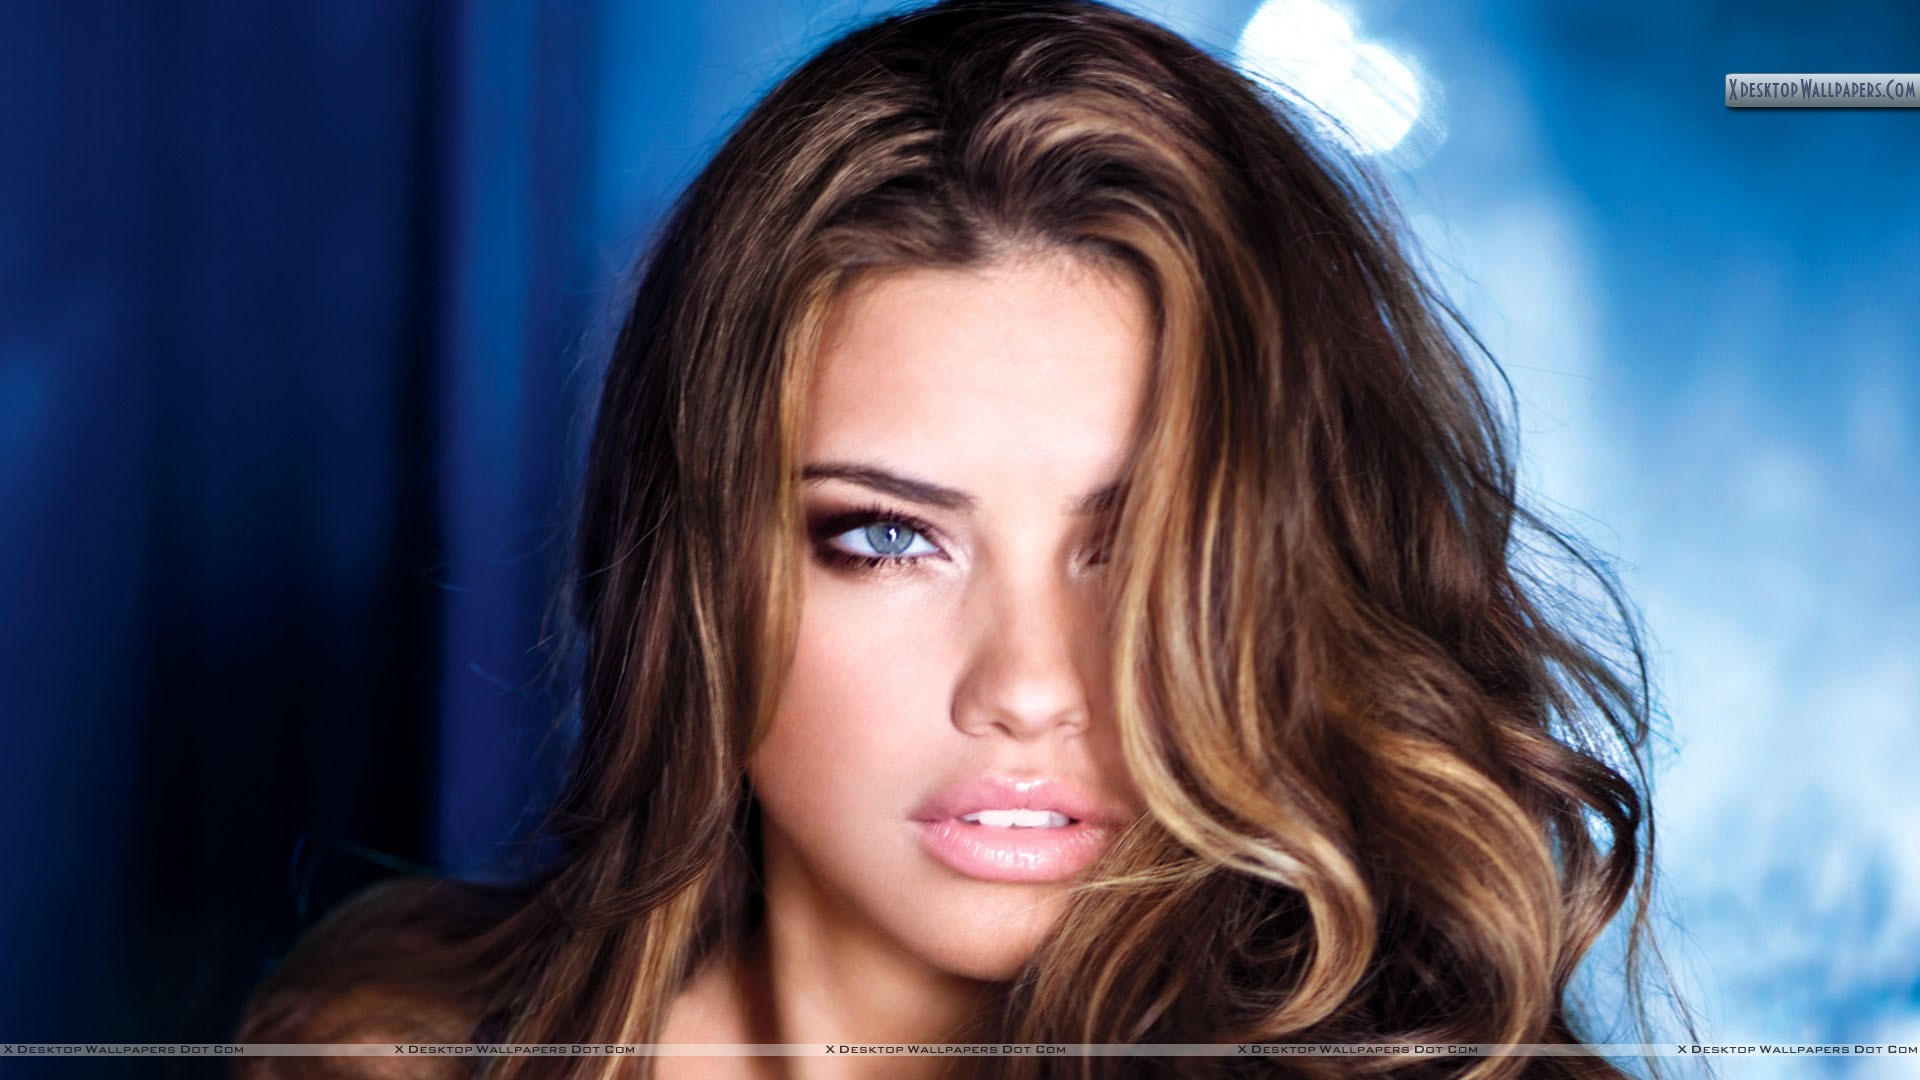 Adriana lima blue eyes golden hair face closeup wallpaper you are viewing wallpaper titled adriana lima voltagebd Images